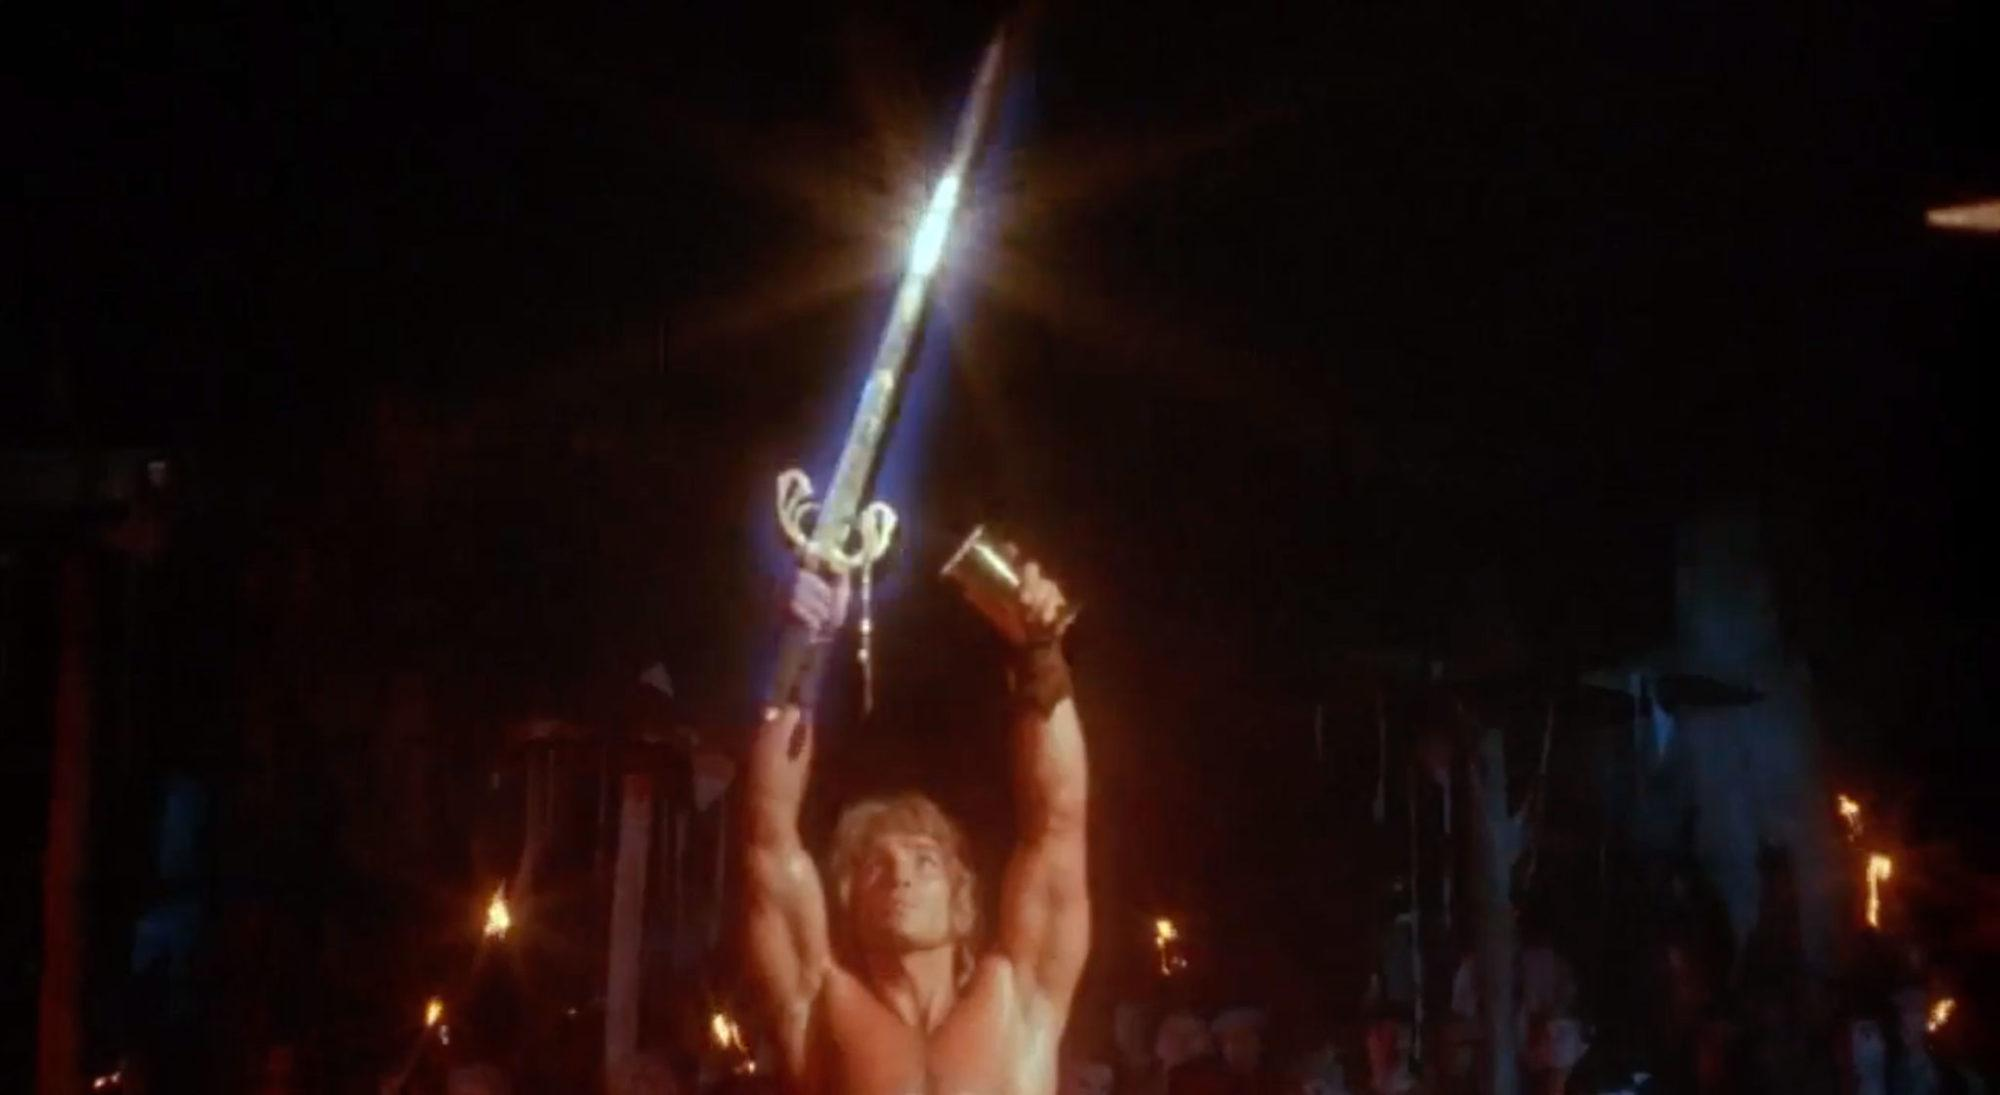 Rick Hill in Deathstalker (1983)